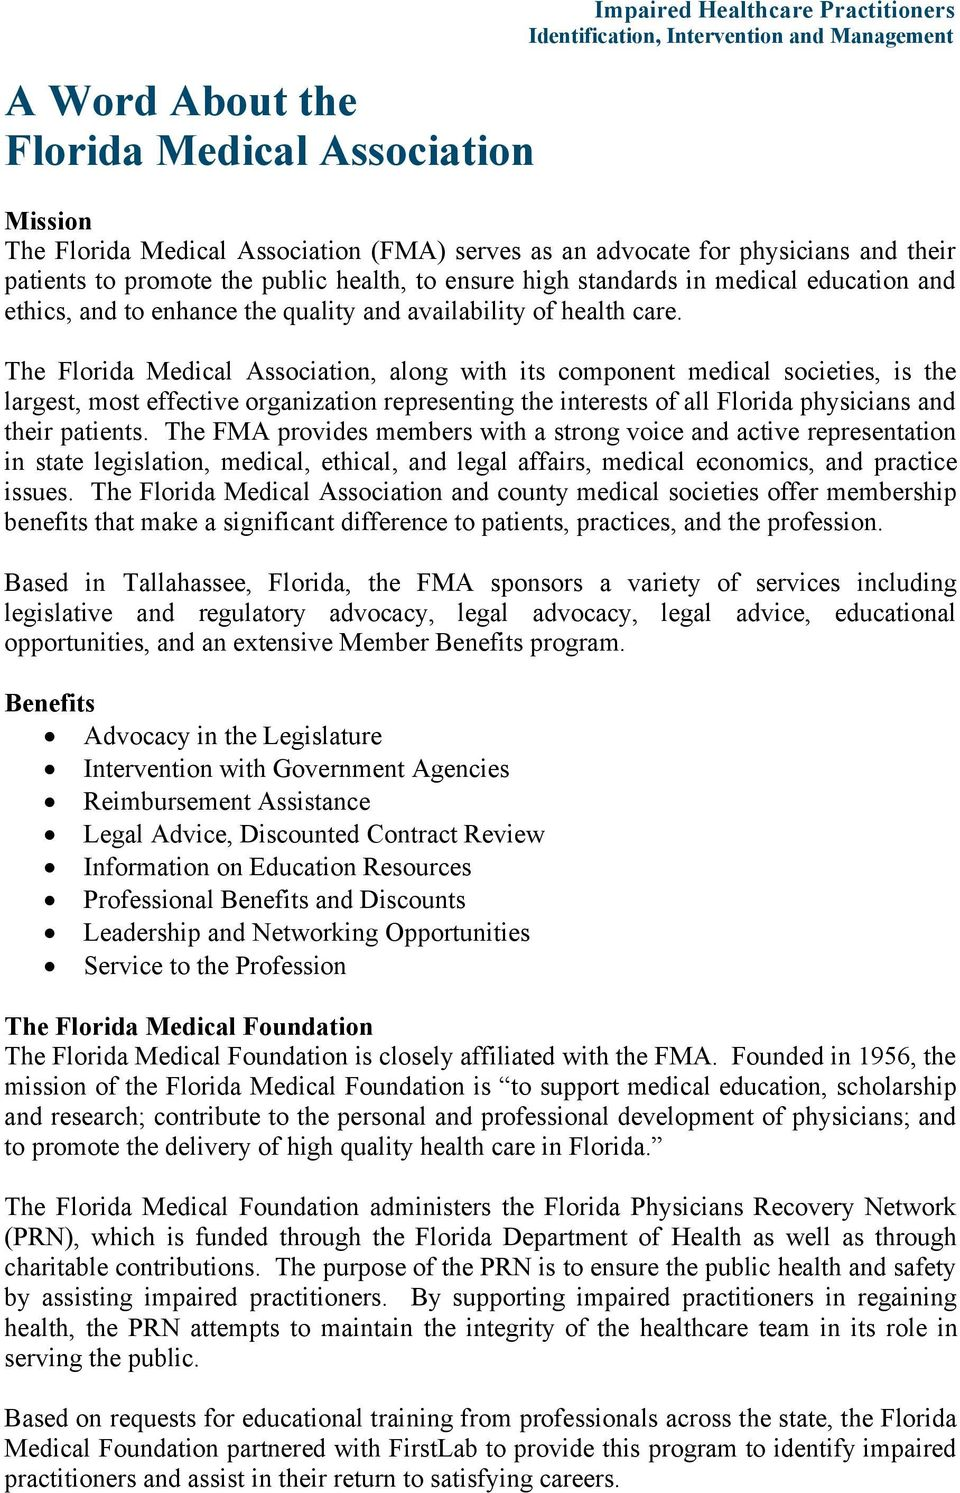 The Florida Medical Association, along with its component medical societies, is the largest, most effective organization representing the interests of all Florida physicians and their patients.